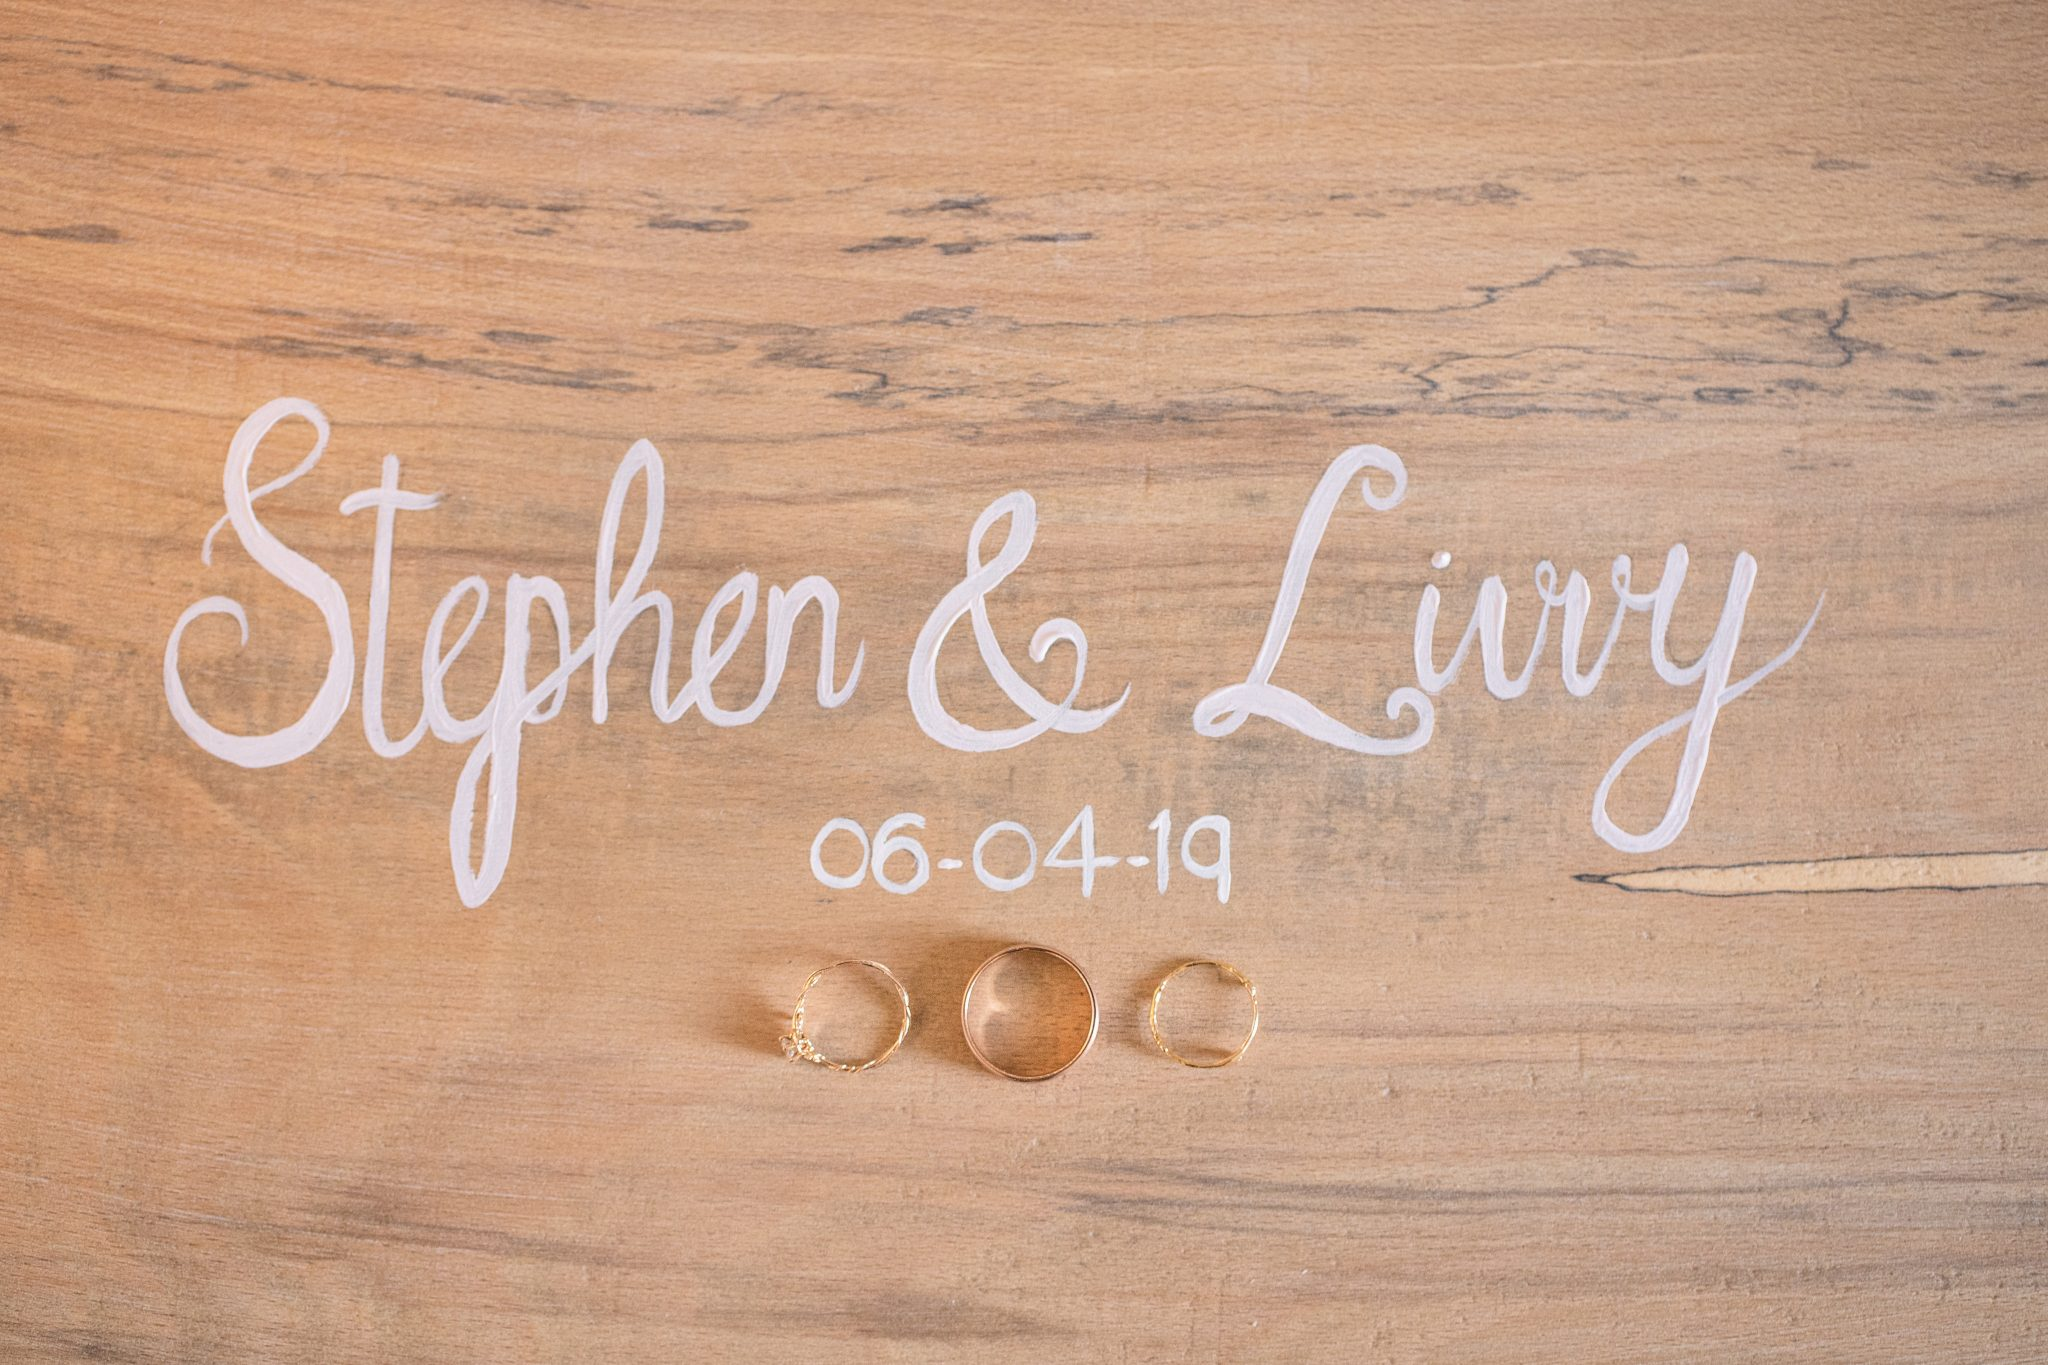 Wedding Rig Shots Ideas with couples names